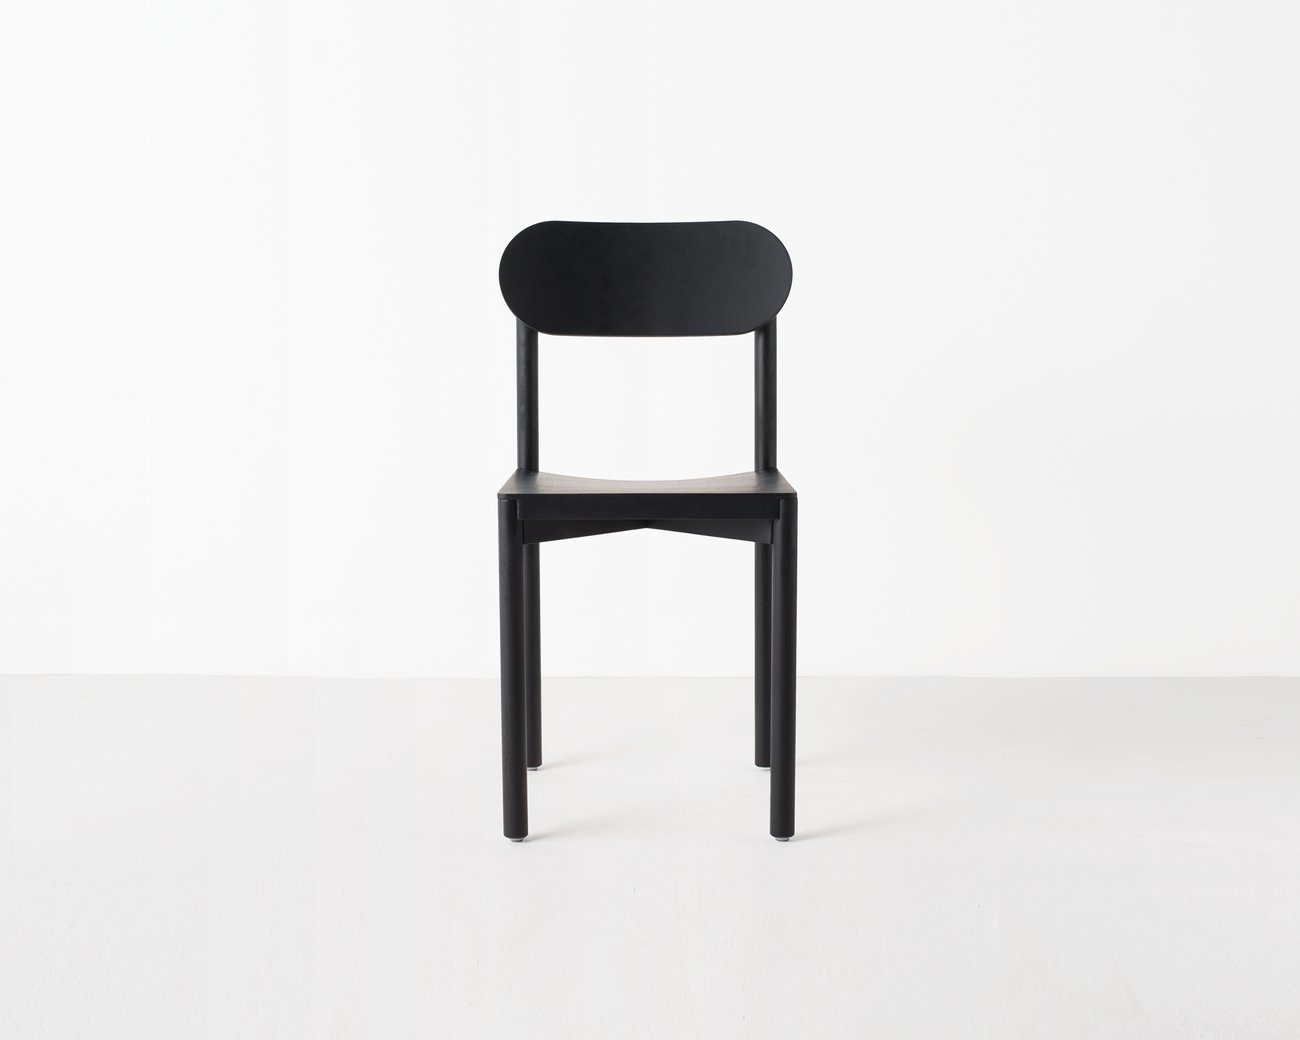 Image: uploads/2017_03/Resident-studio-chair-by-Jason-Whiteley-2.jpg